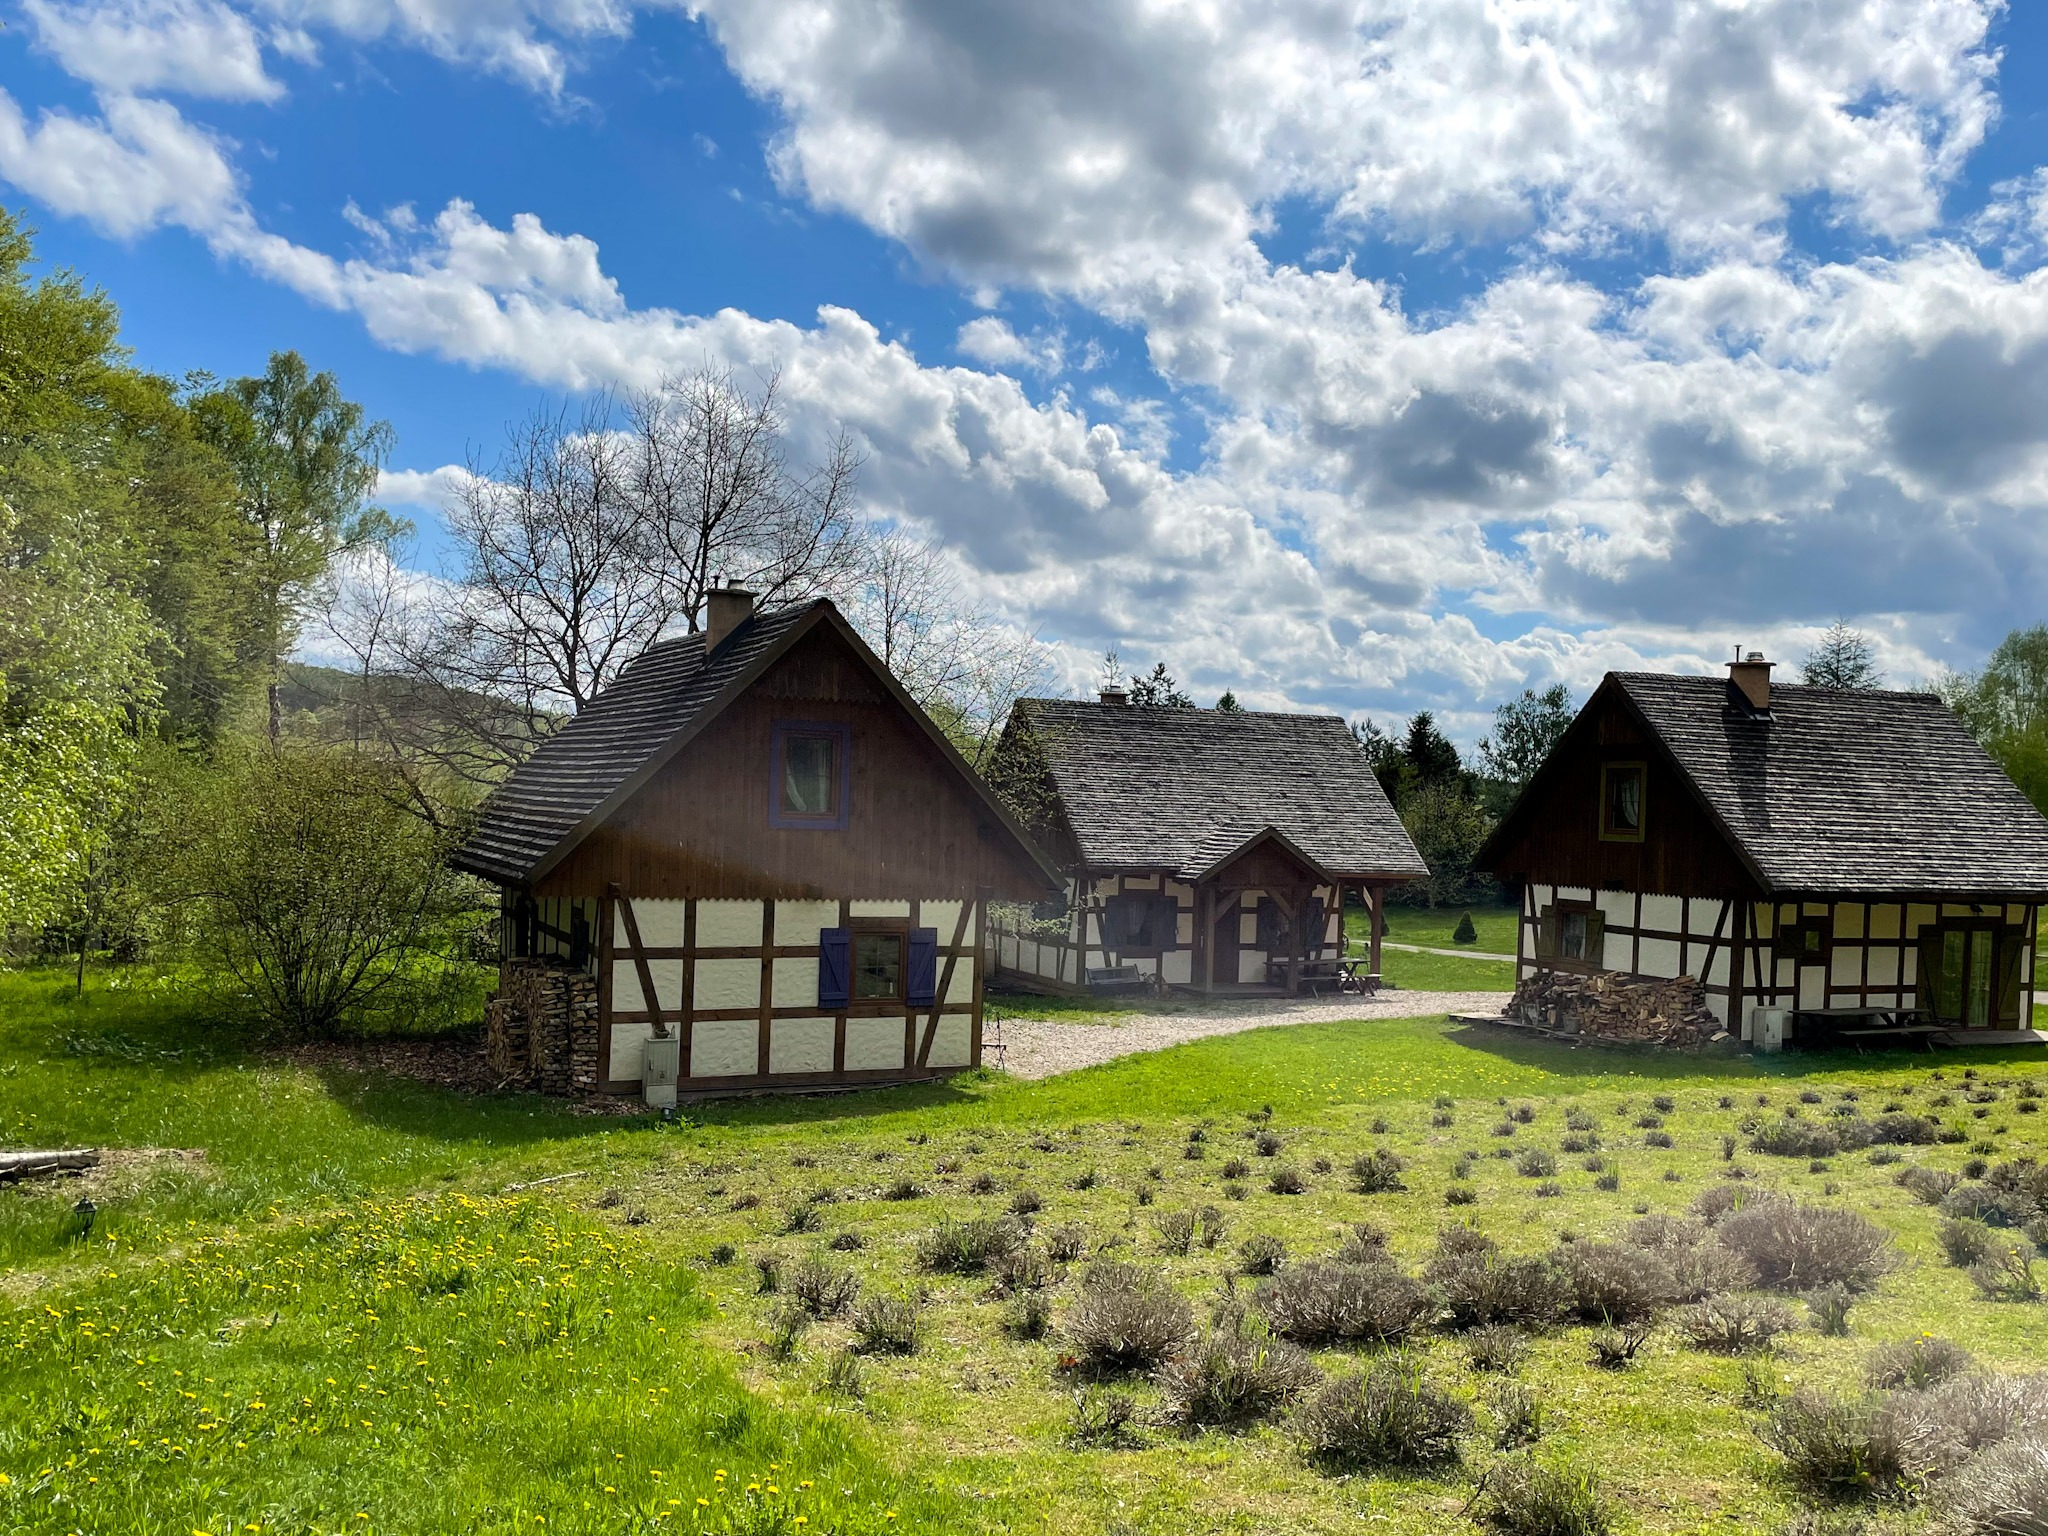 The Kashubian Switzerland 17 - The Kashubian Switzerland — tradition and mystery